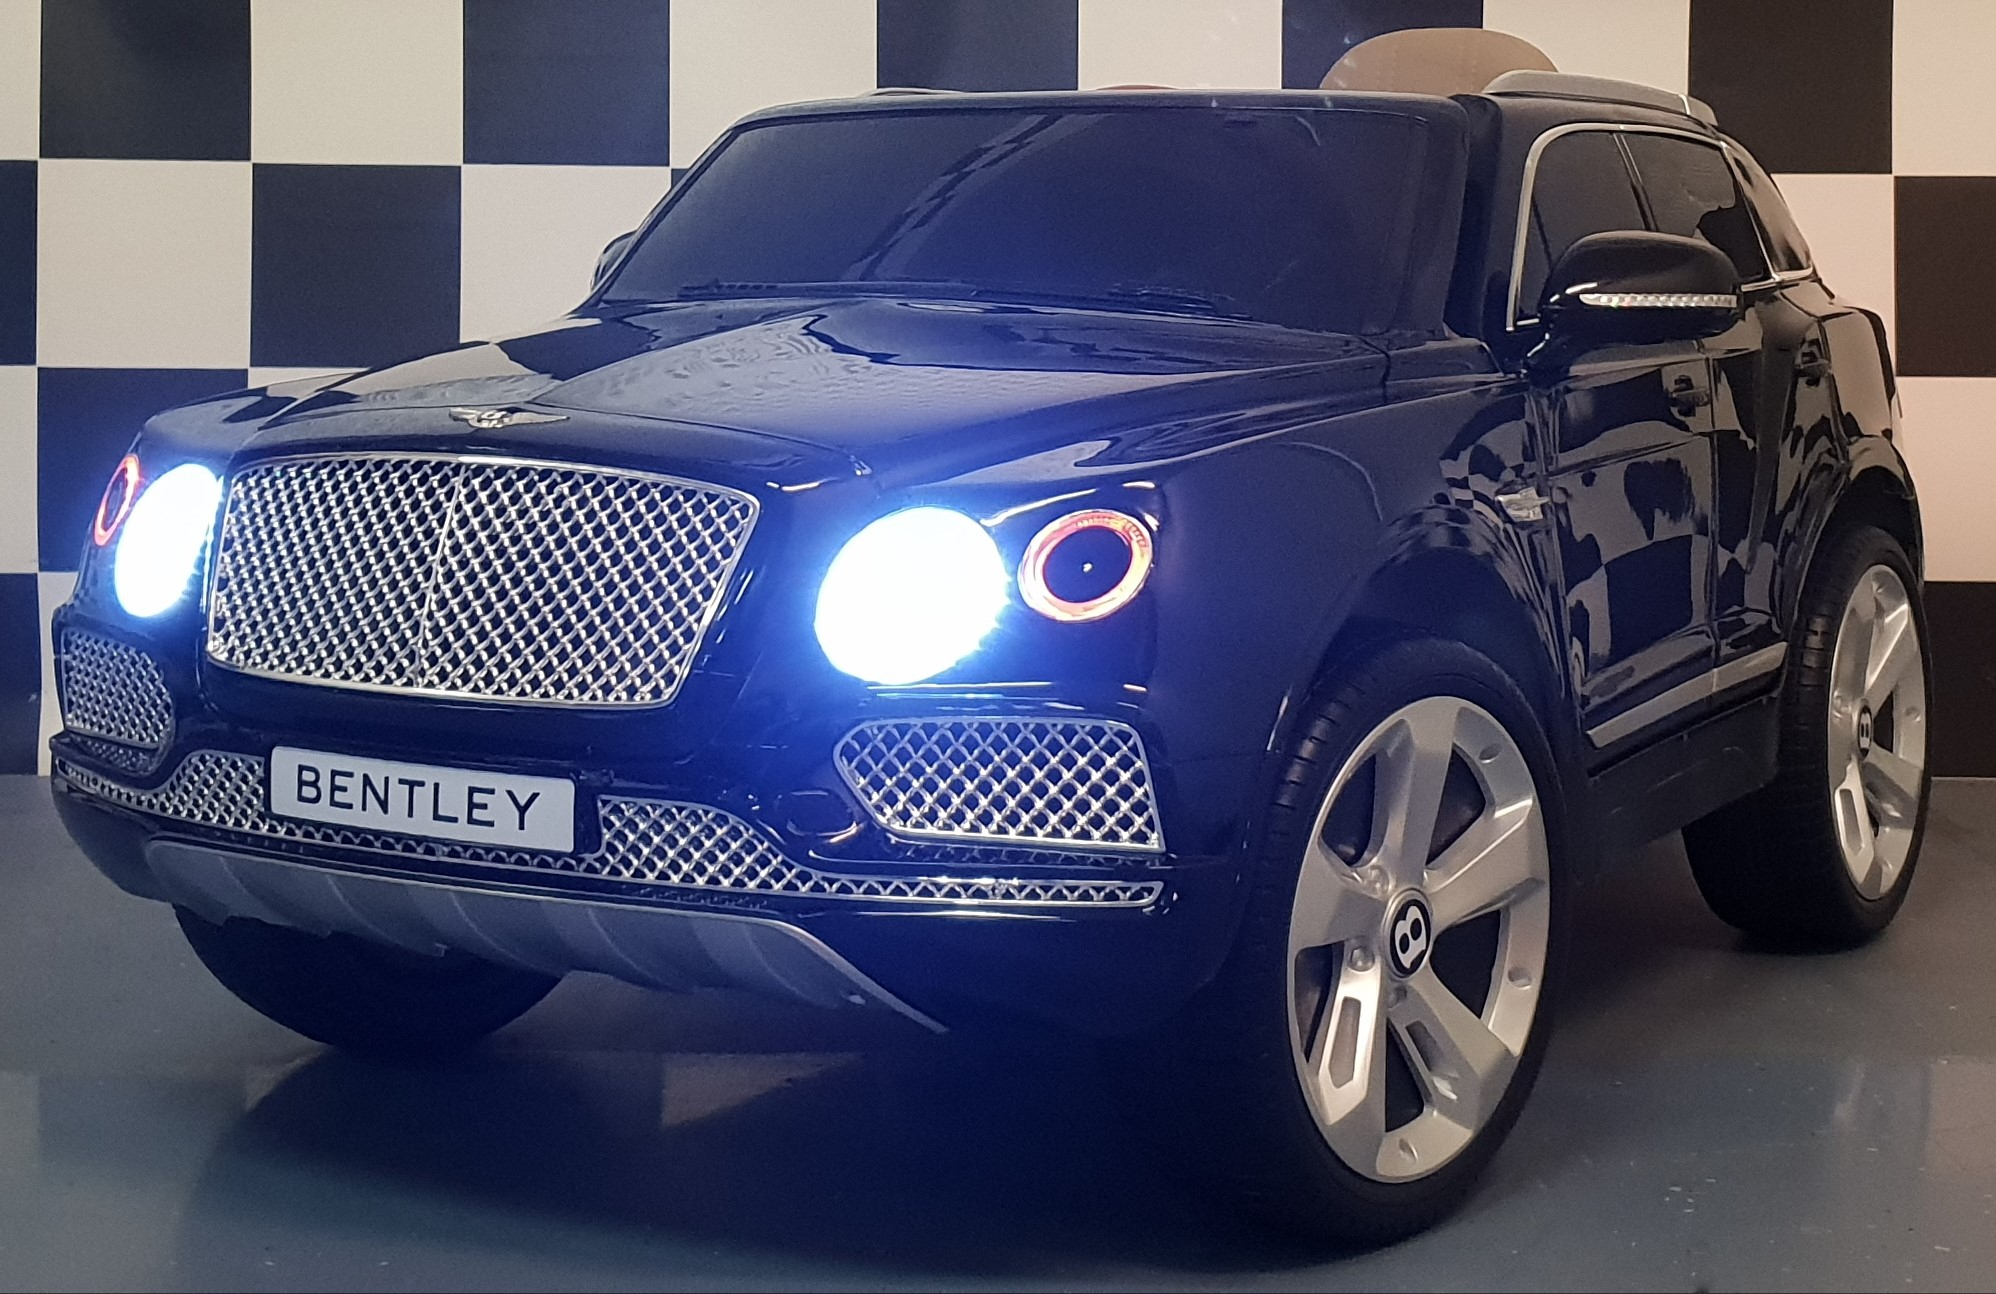 Bentley Bentayga kinderauto met afstandbediening metallic zwart